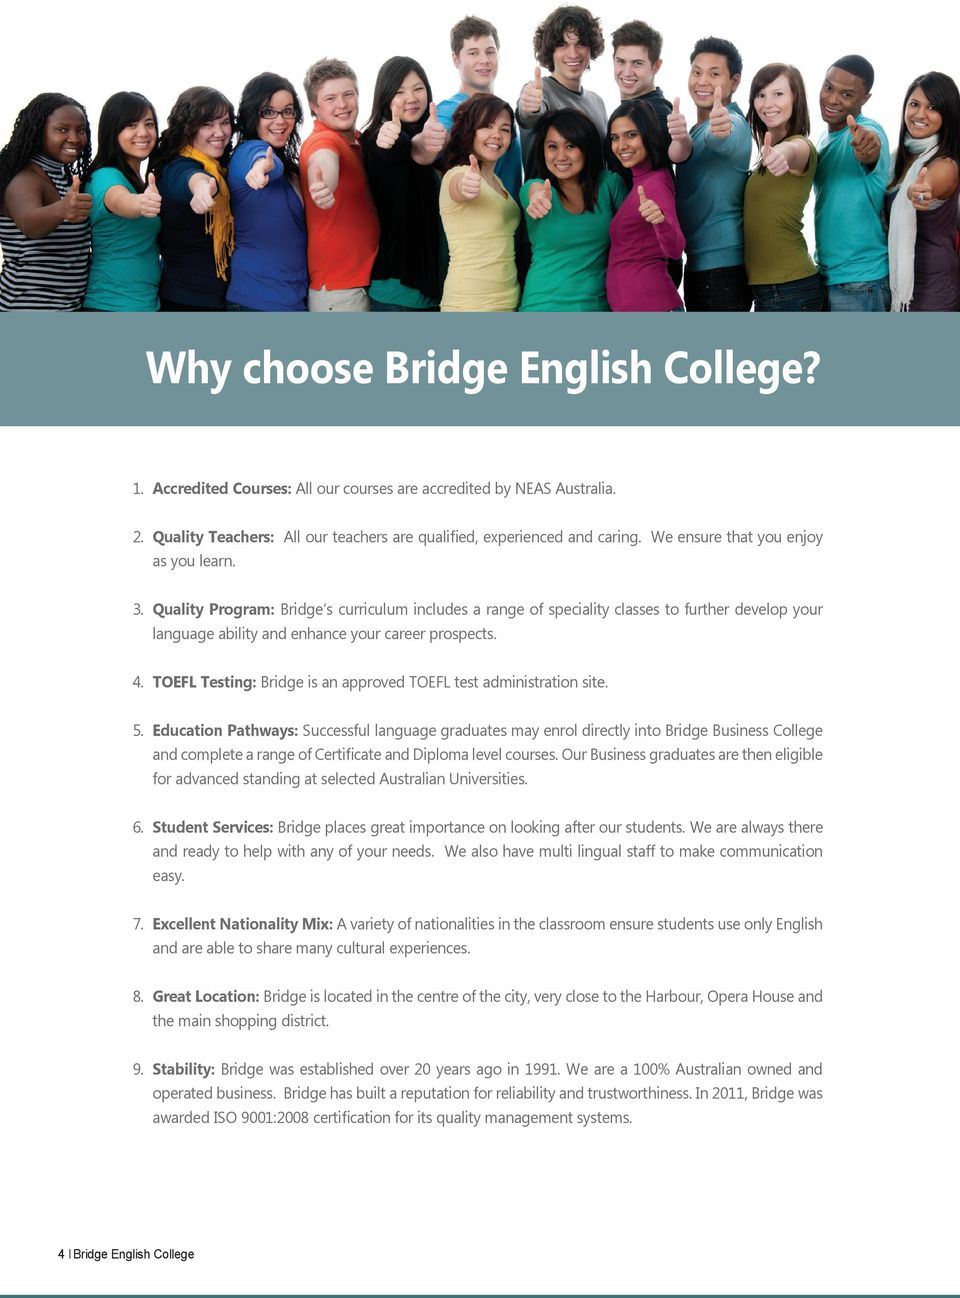 TOEFL Testing: Bridge is an approved TOEFL test administration site. 5.